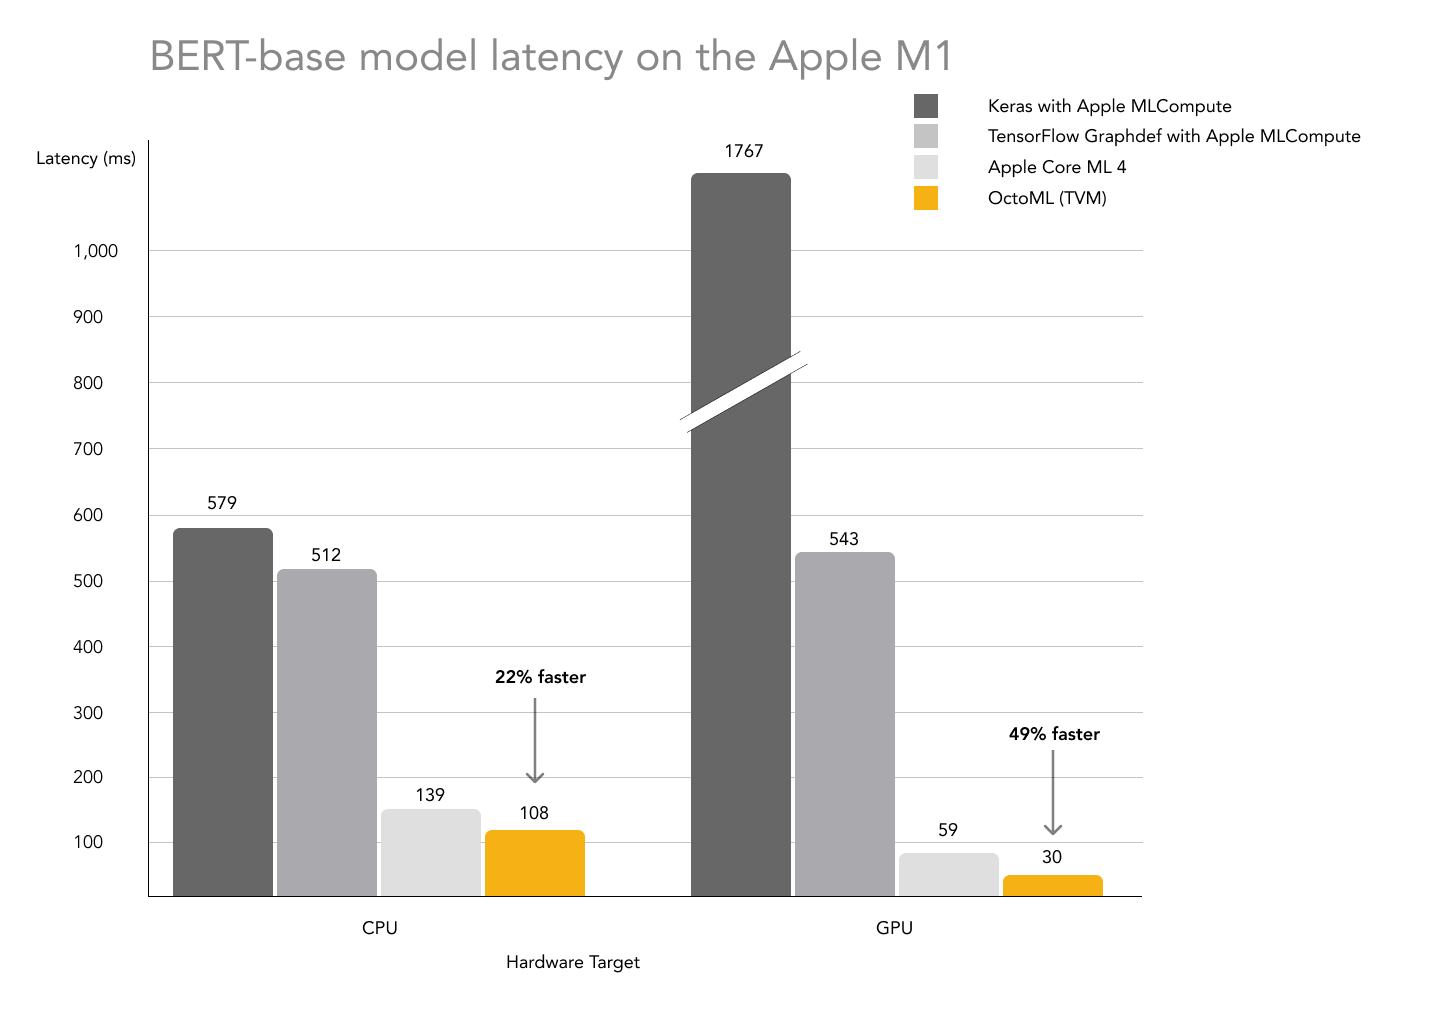 Delivering 49% performance improvements over Apple's machine learning stack on the new M1